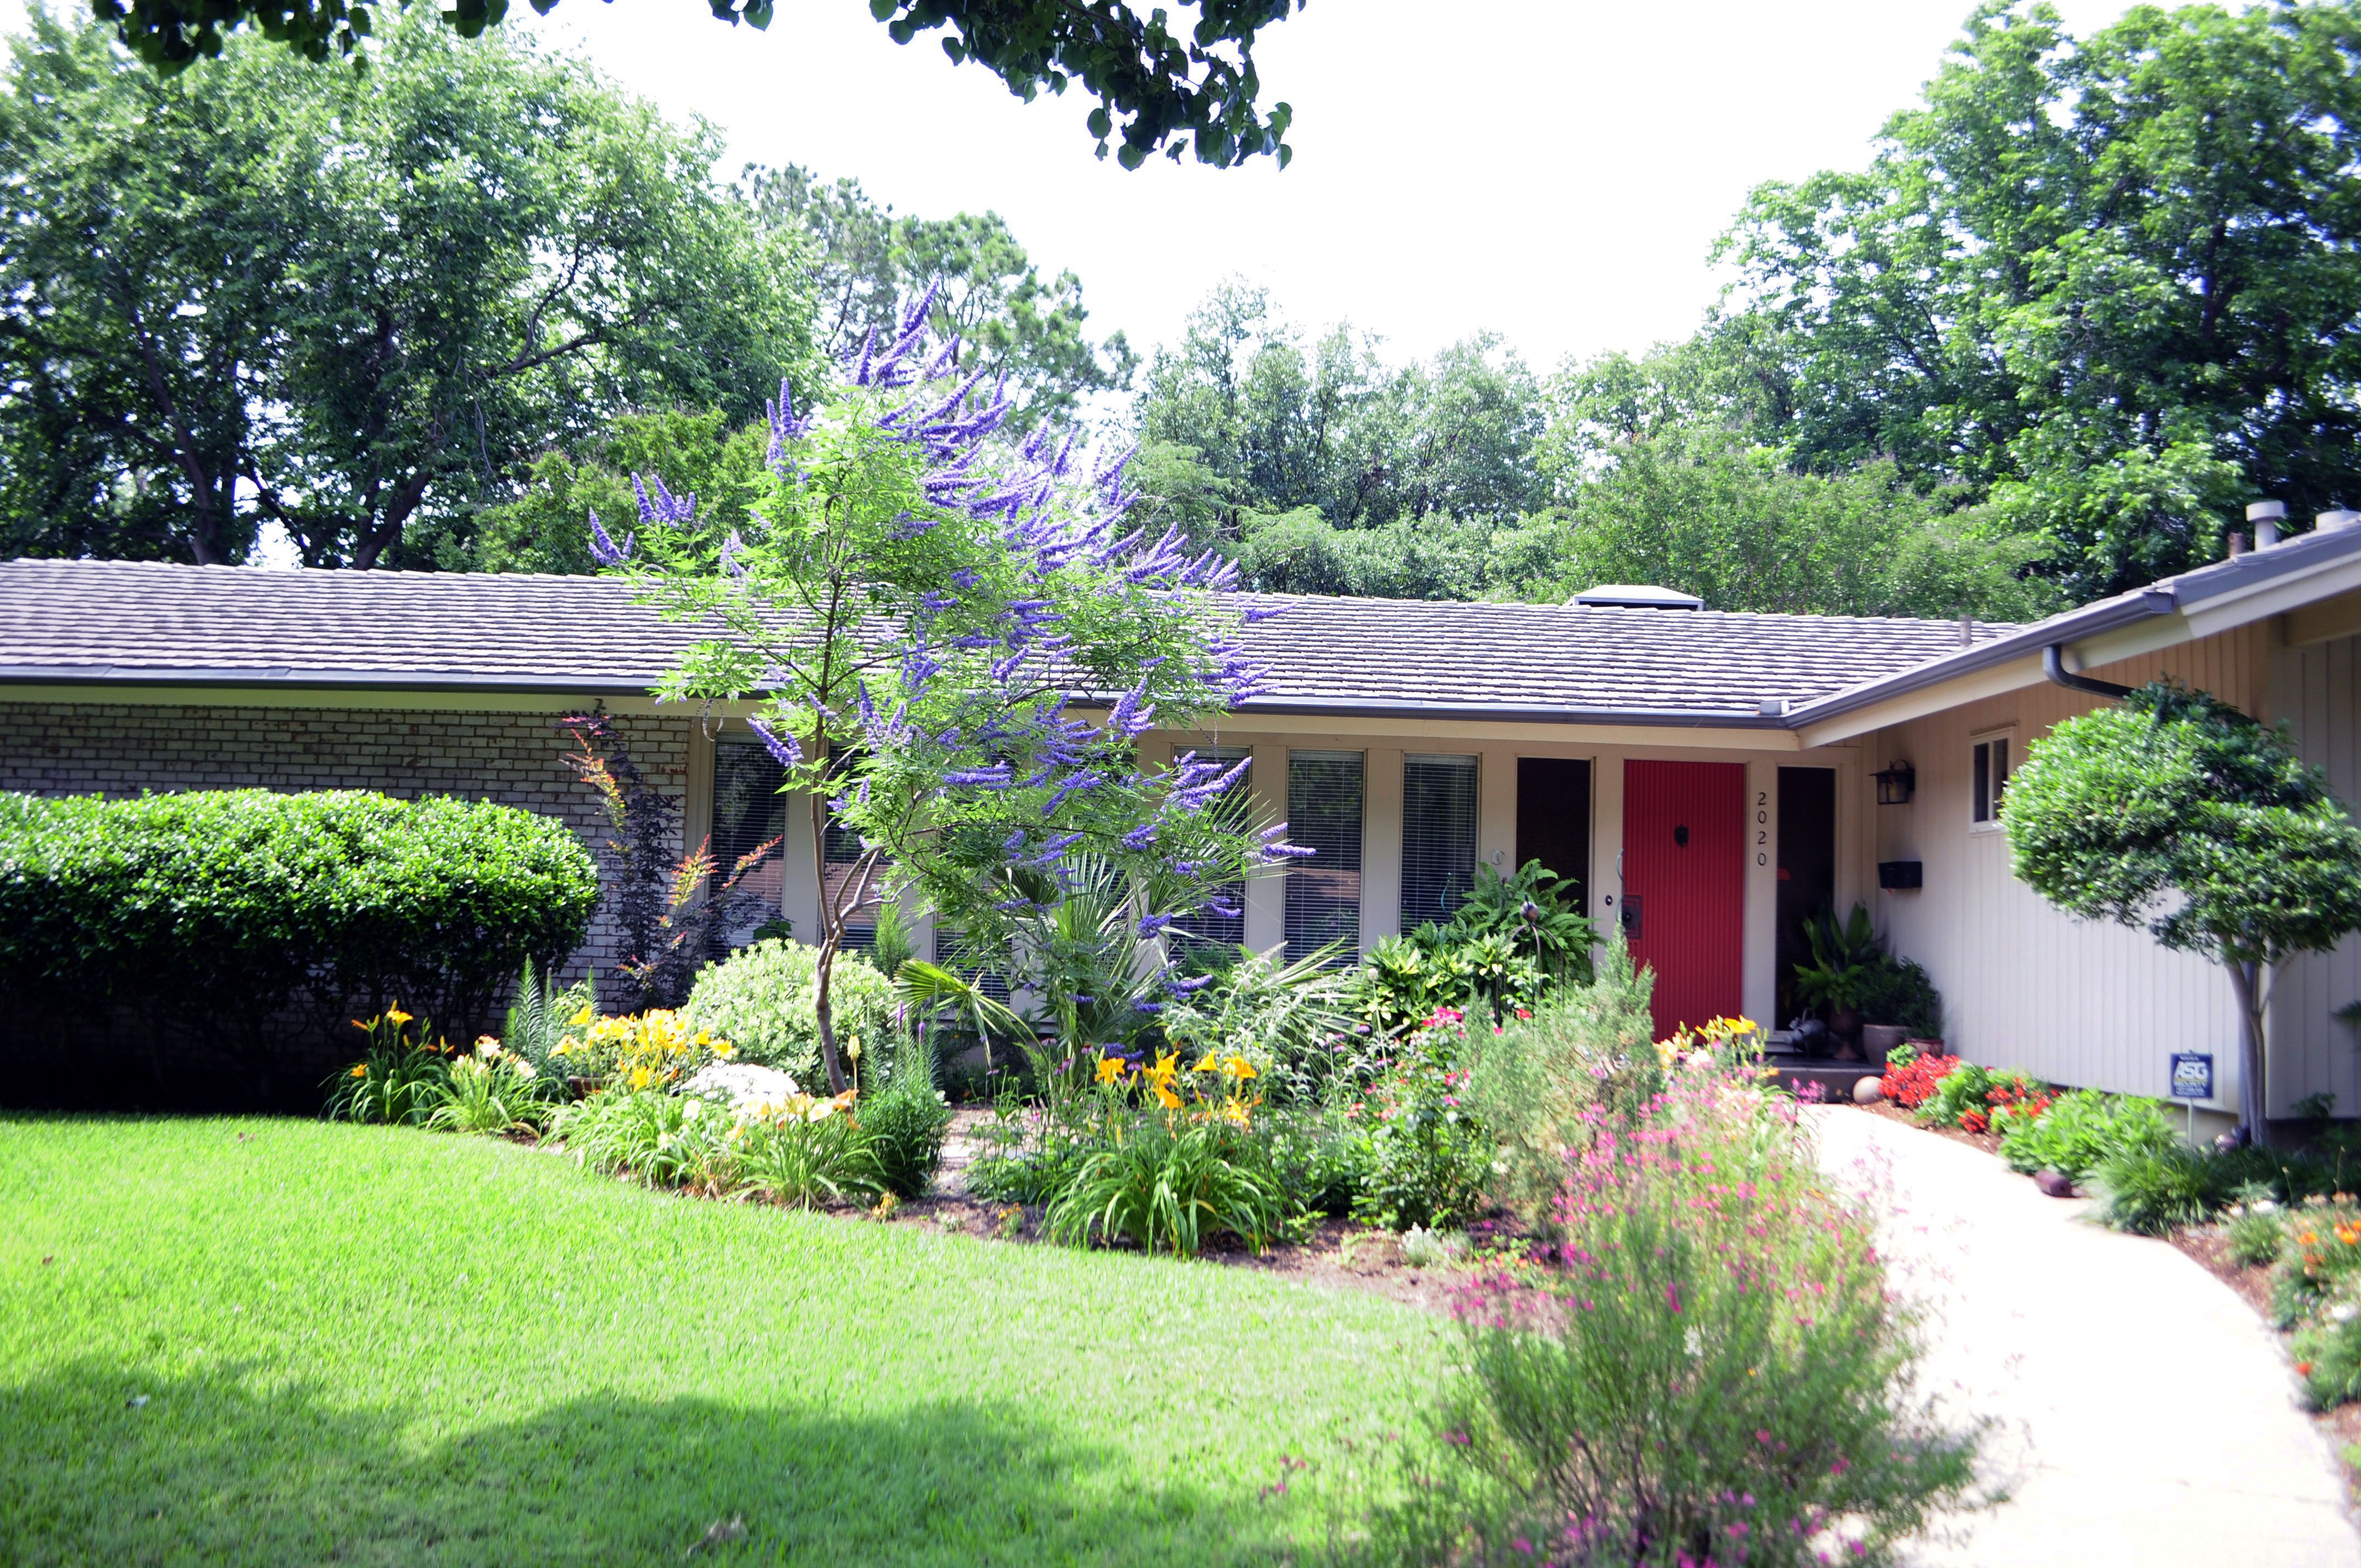 Exquisite Home Landscaping Ideas For Small Yards Exterior Round